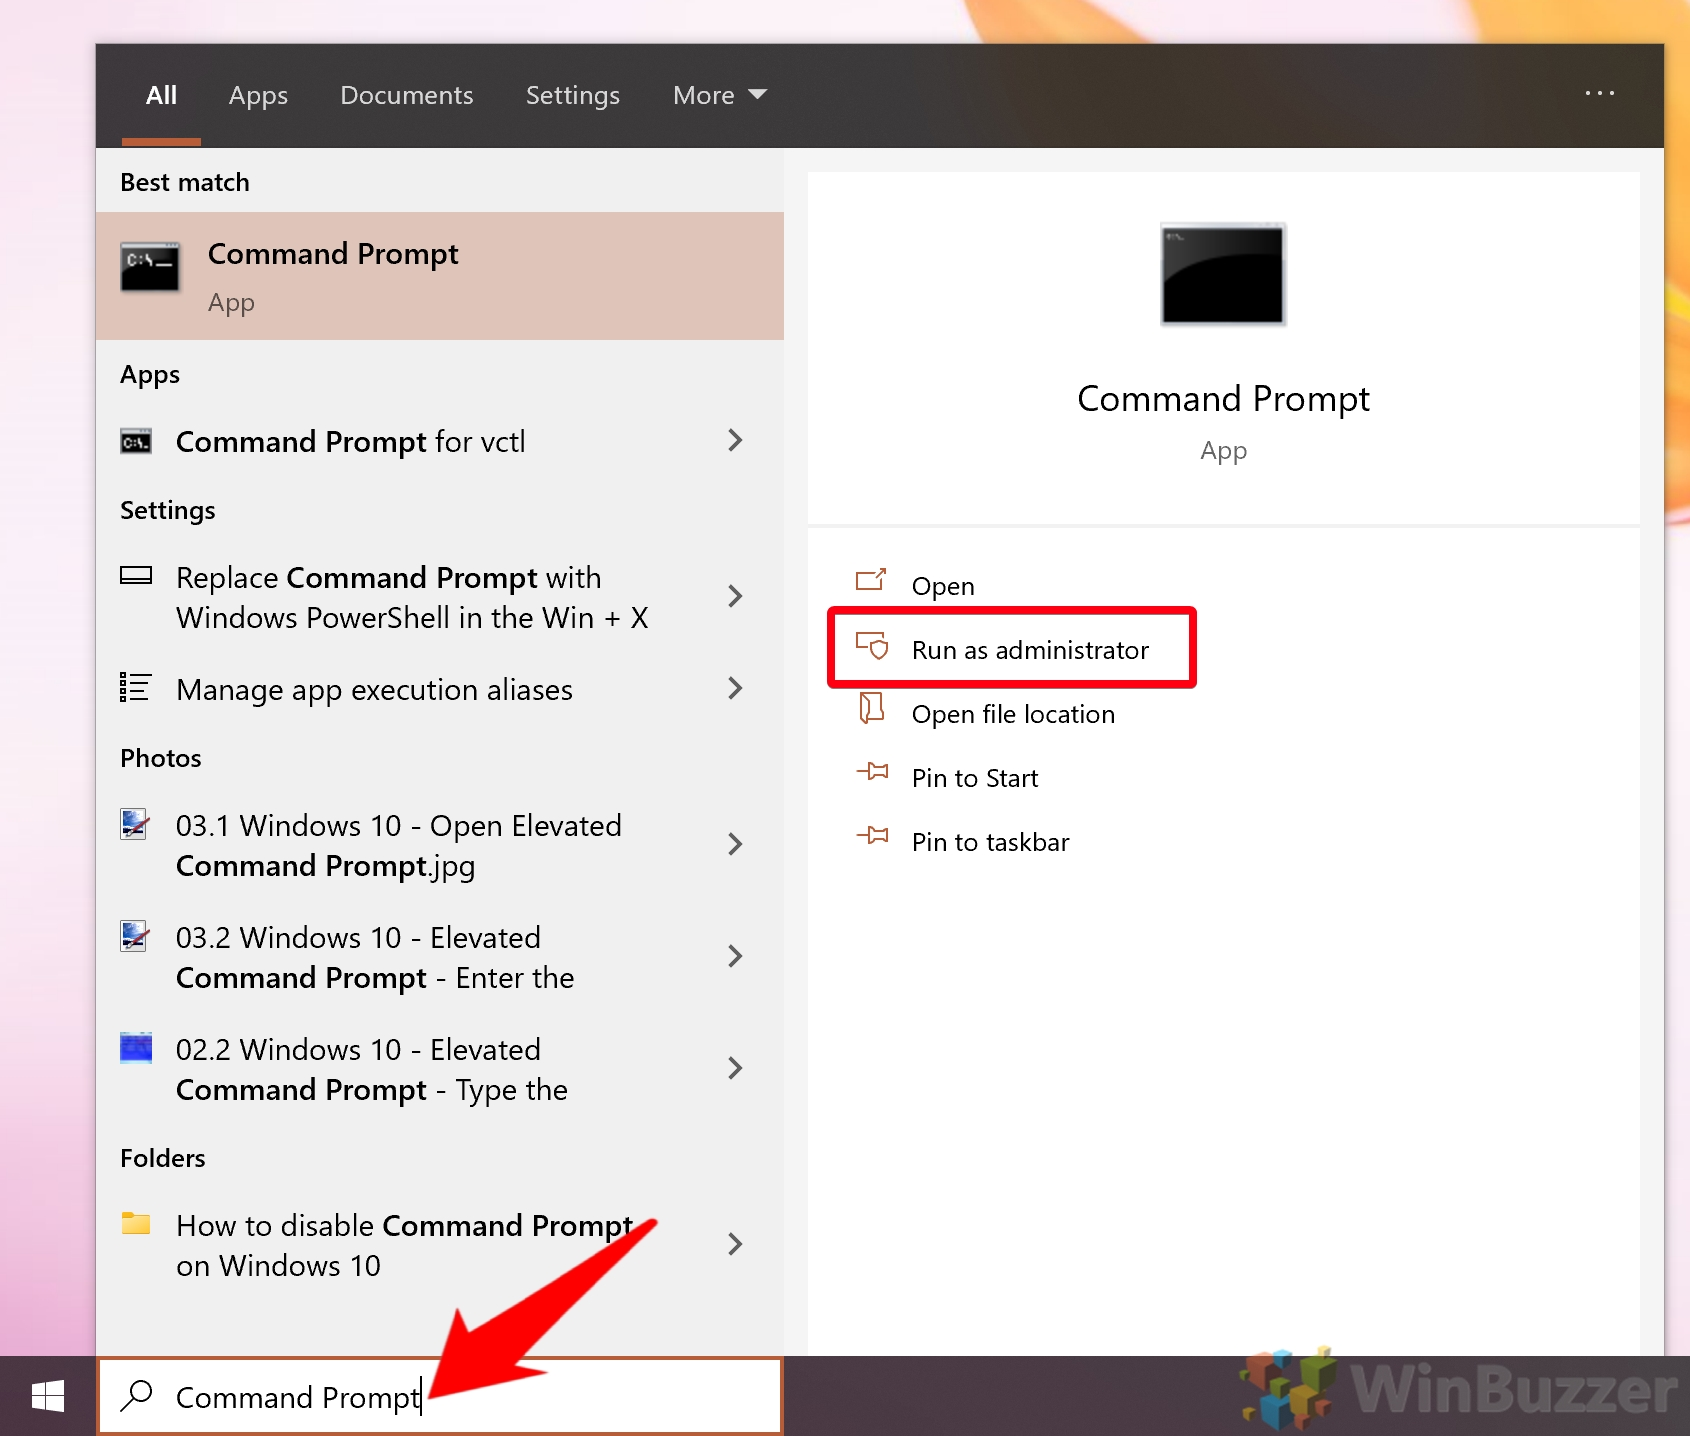 Windows 10 - Open Elevated Command Prompt